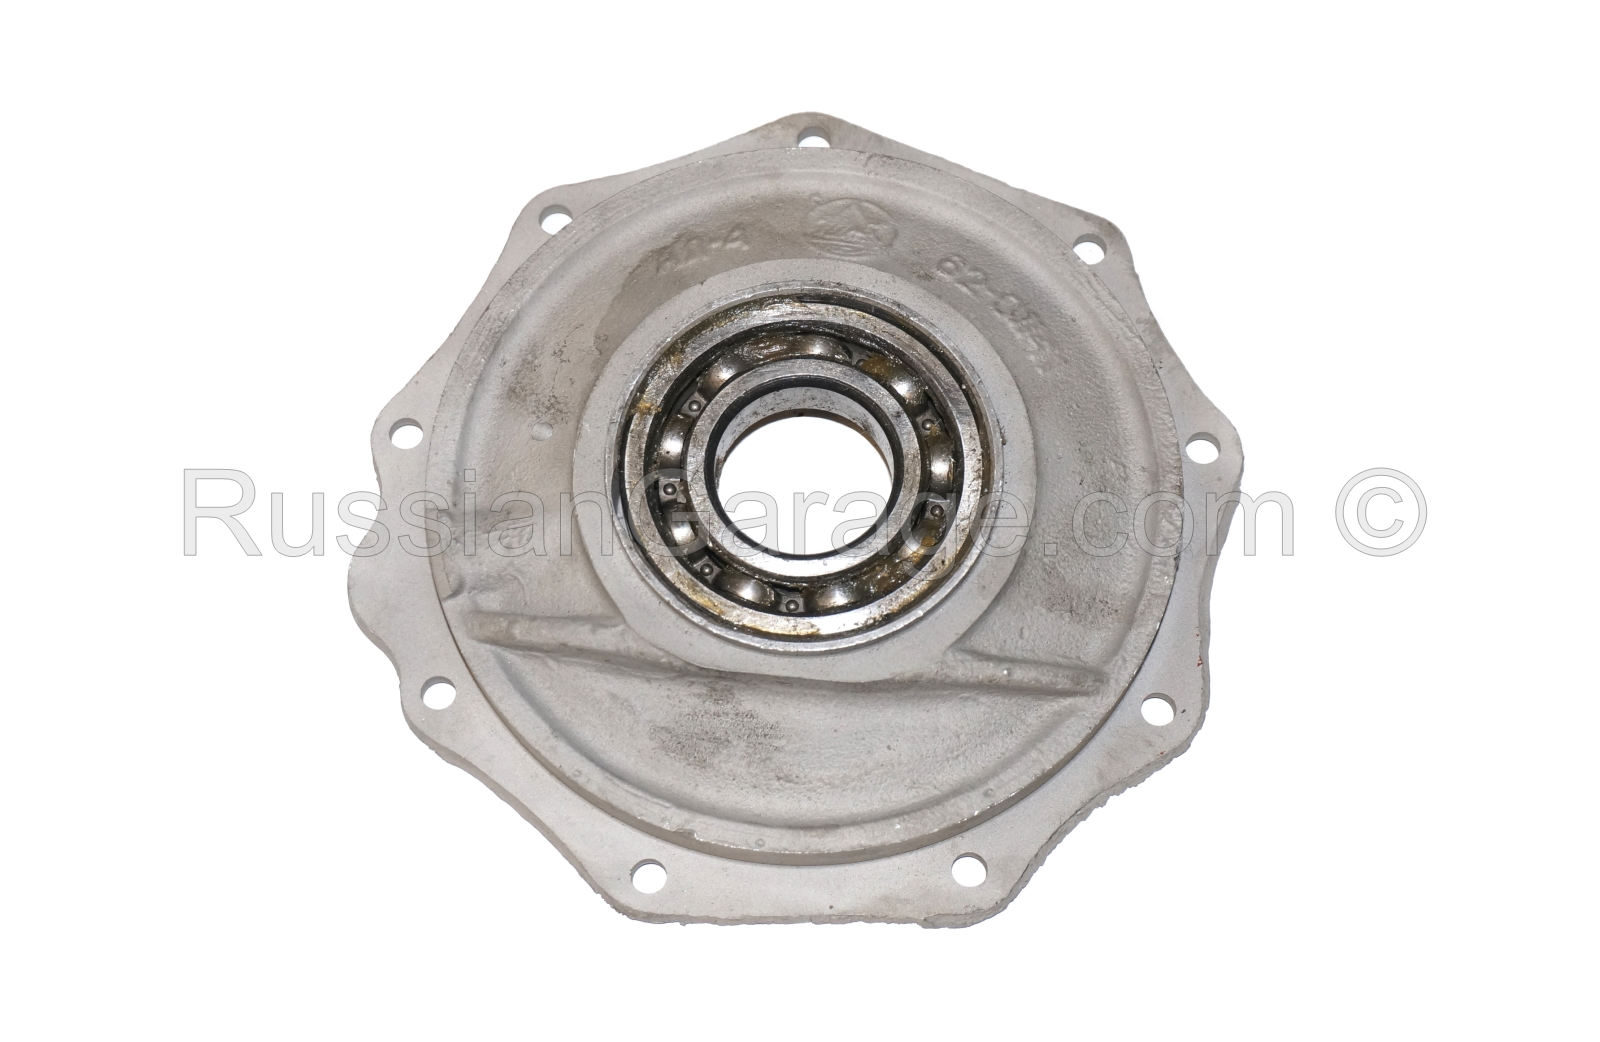 Crankshaft rear bearing housing bearing 207 assy U...